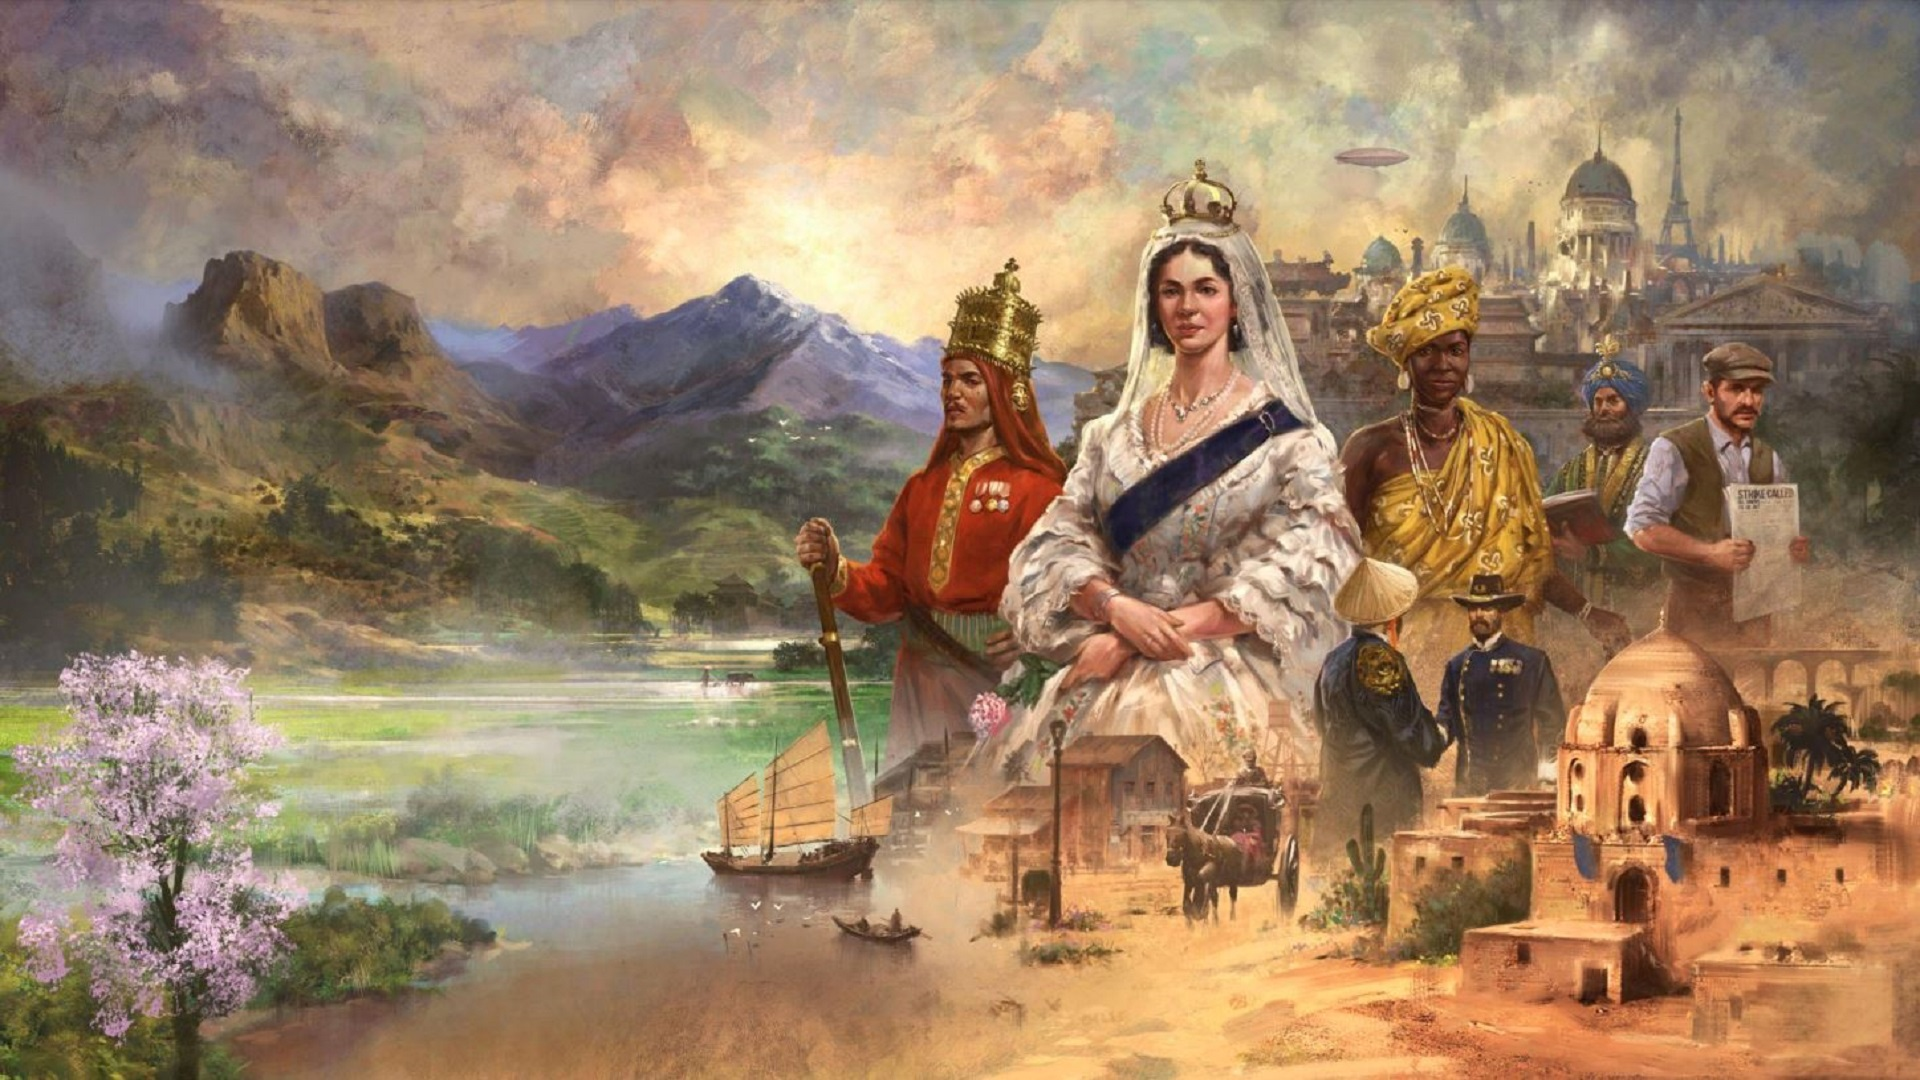 Victoria 3, diplomatic plays, and the art of war